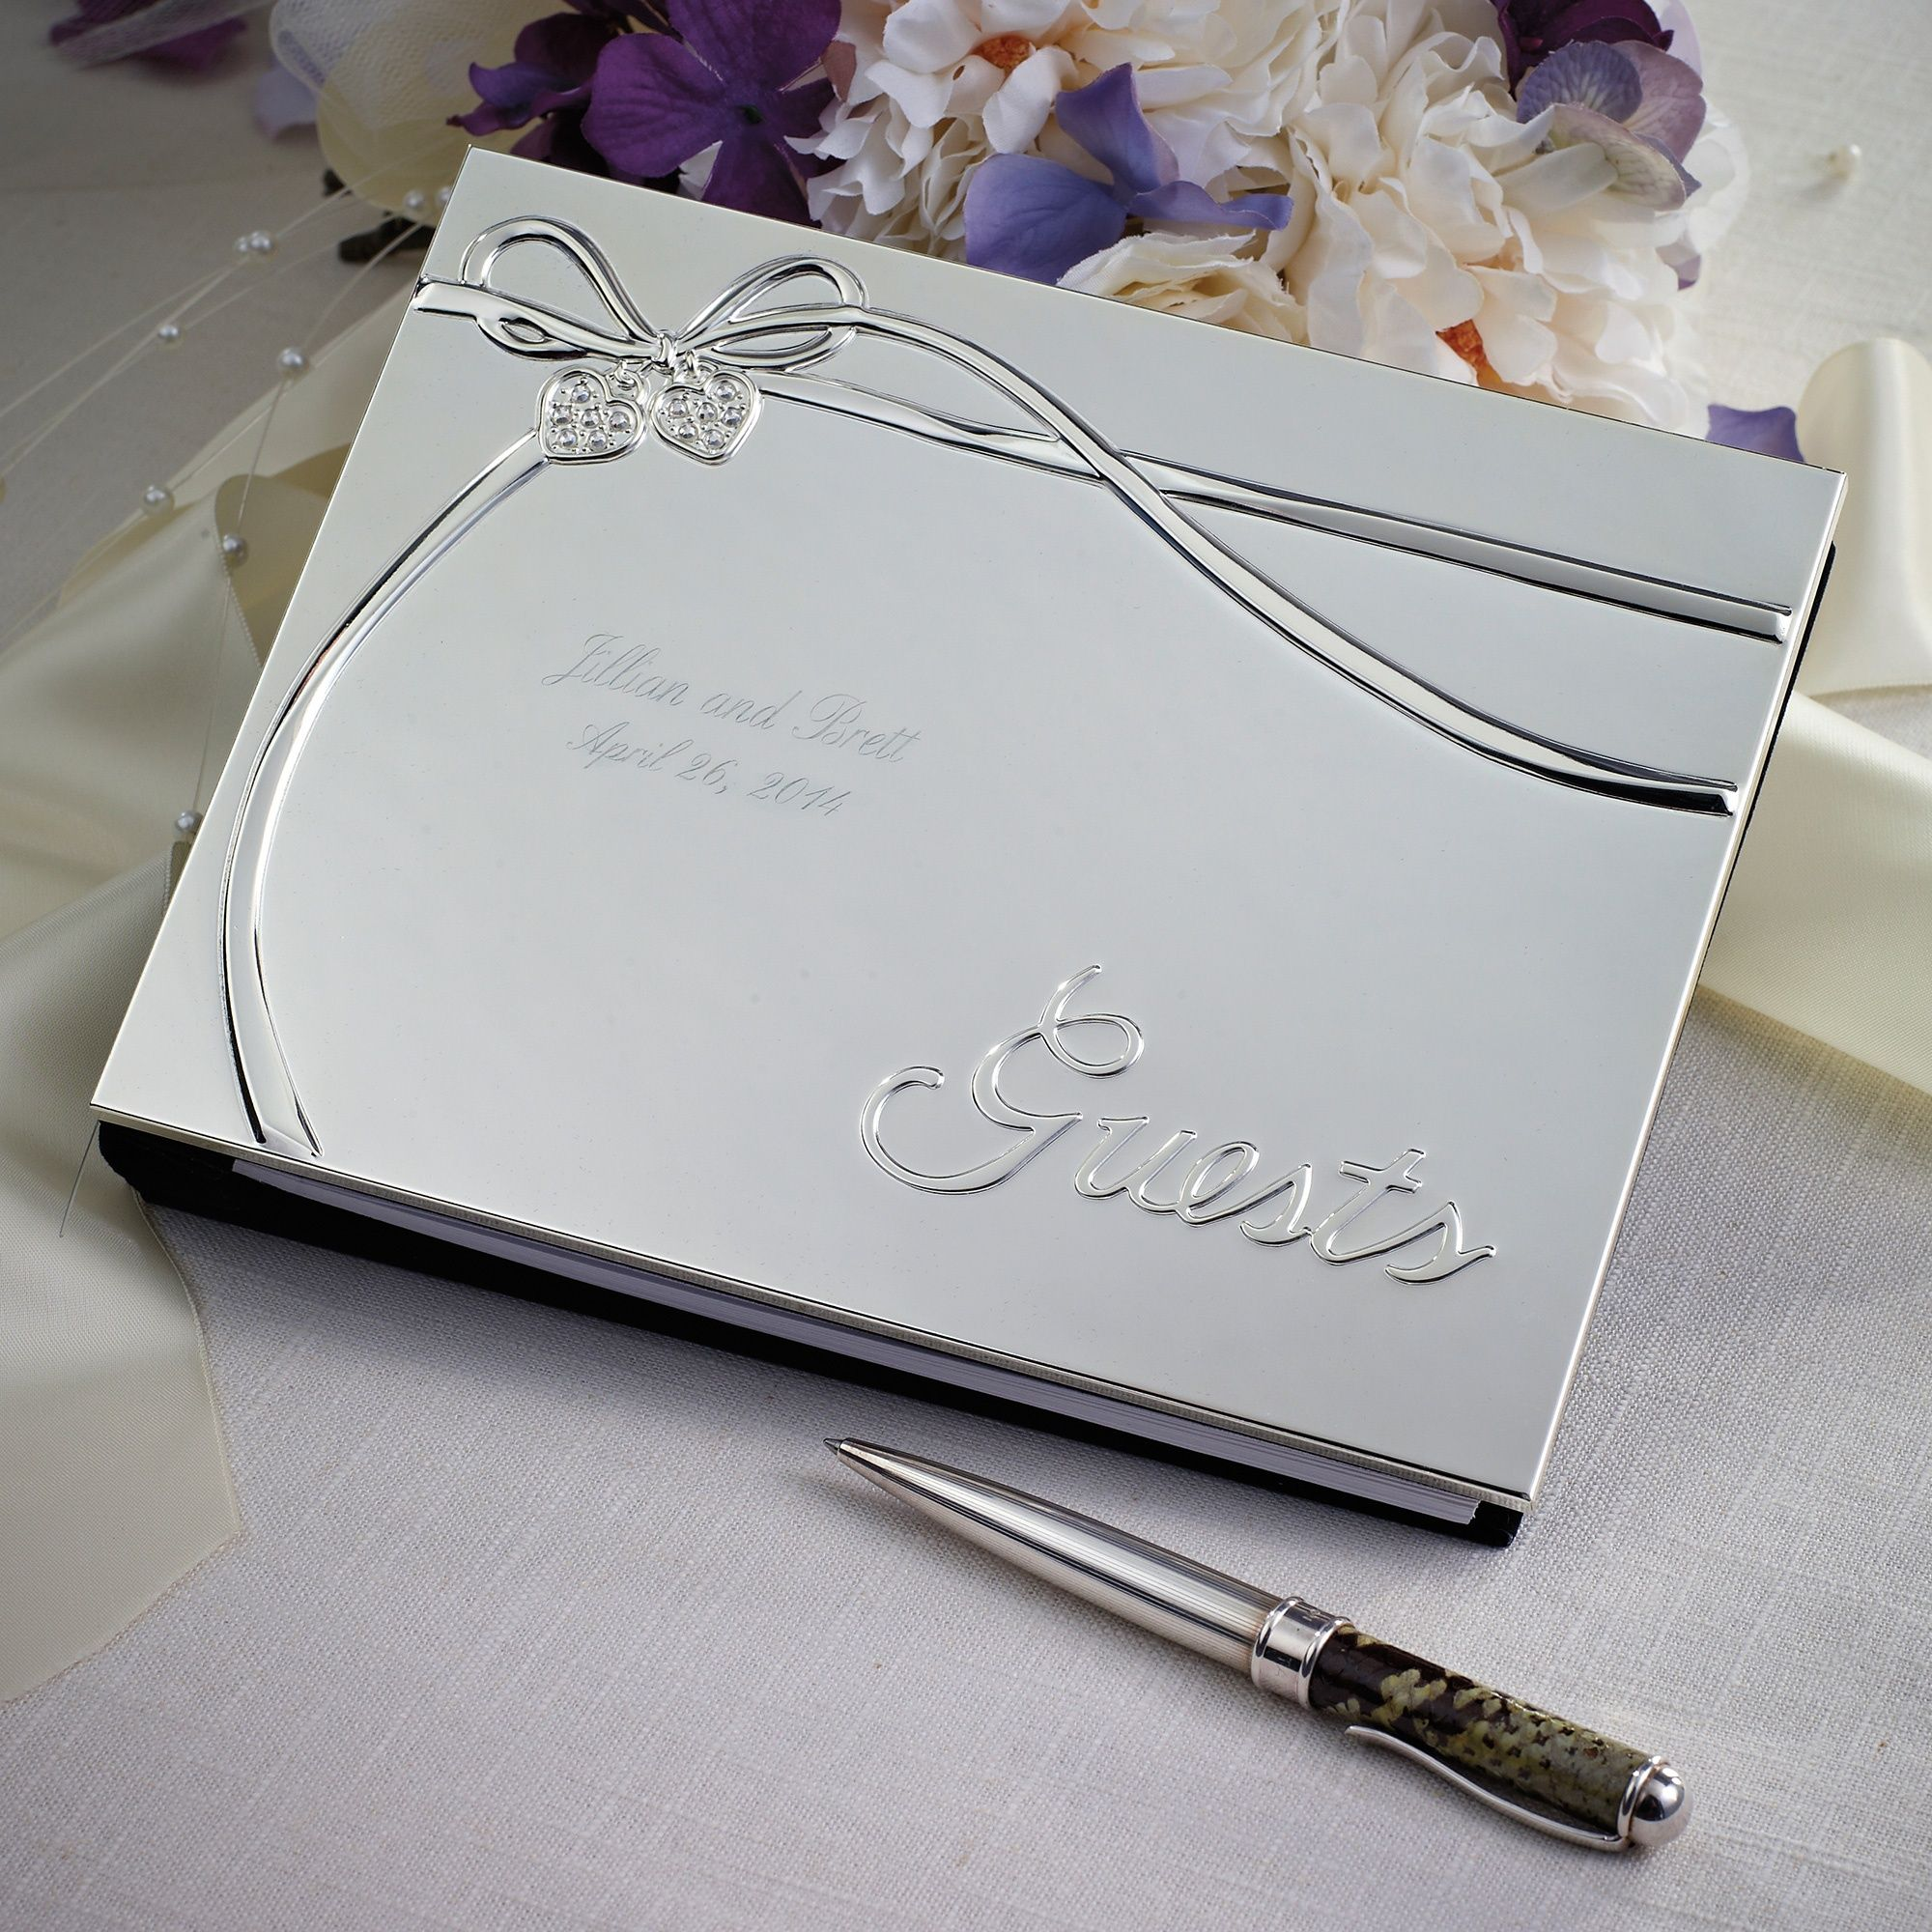 Lenox Romance Wedding Guest Book | #exclusivelyweddings and if you ...